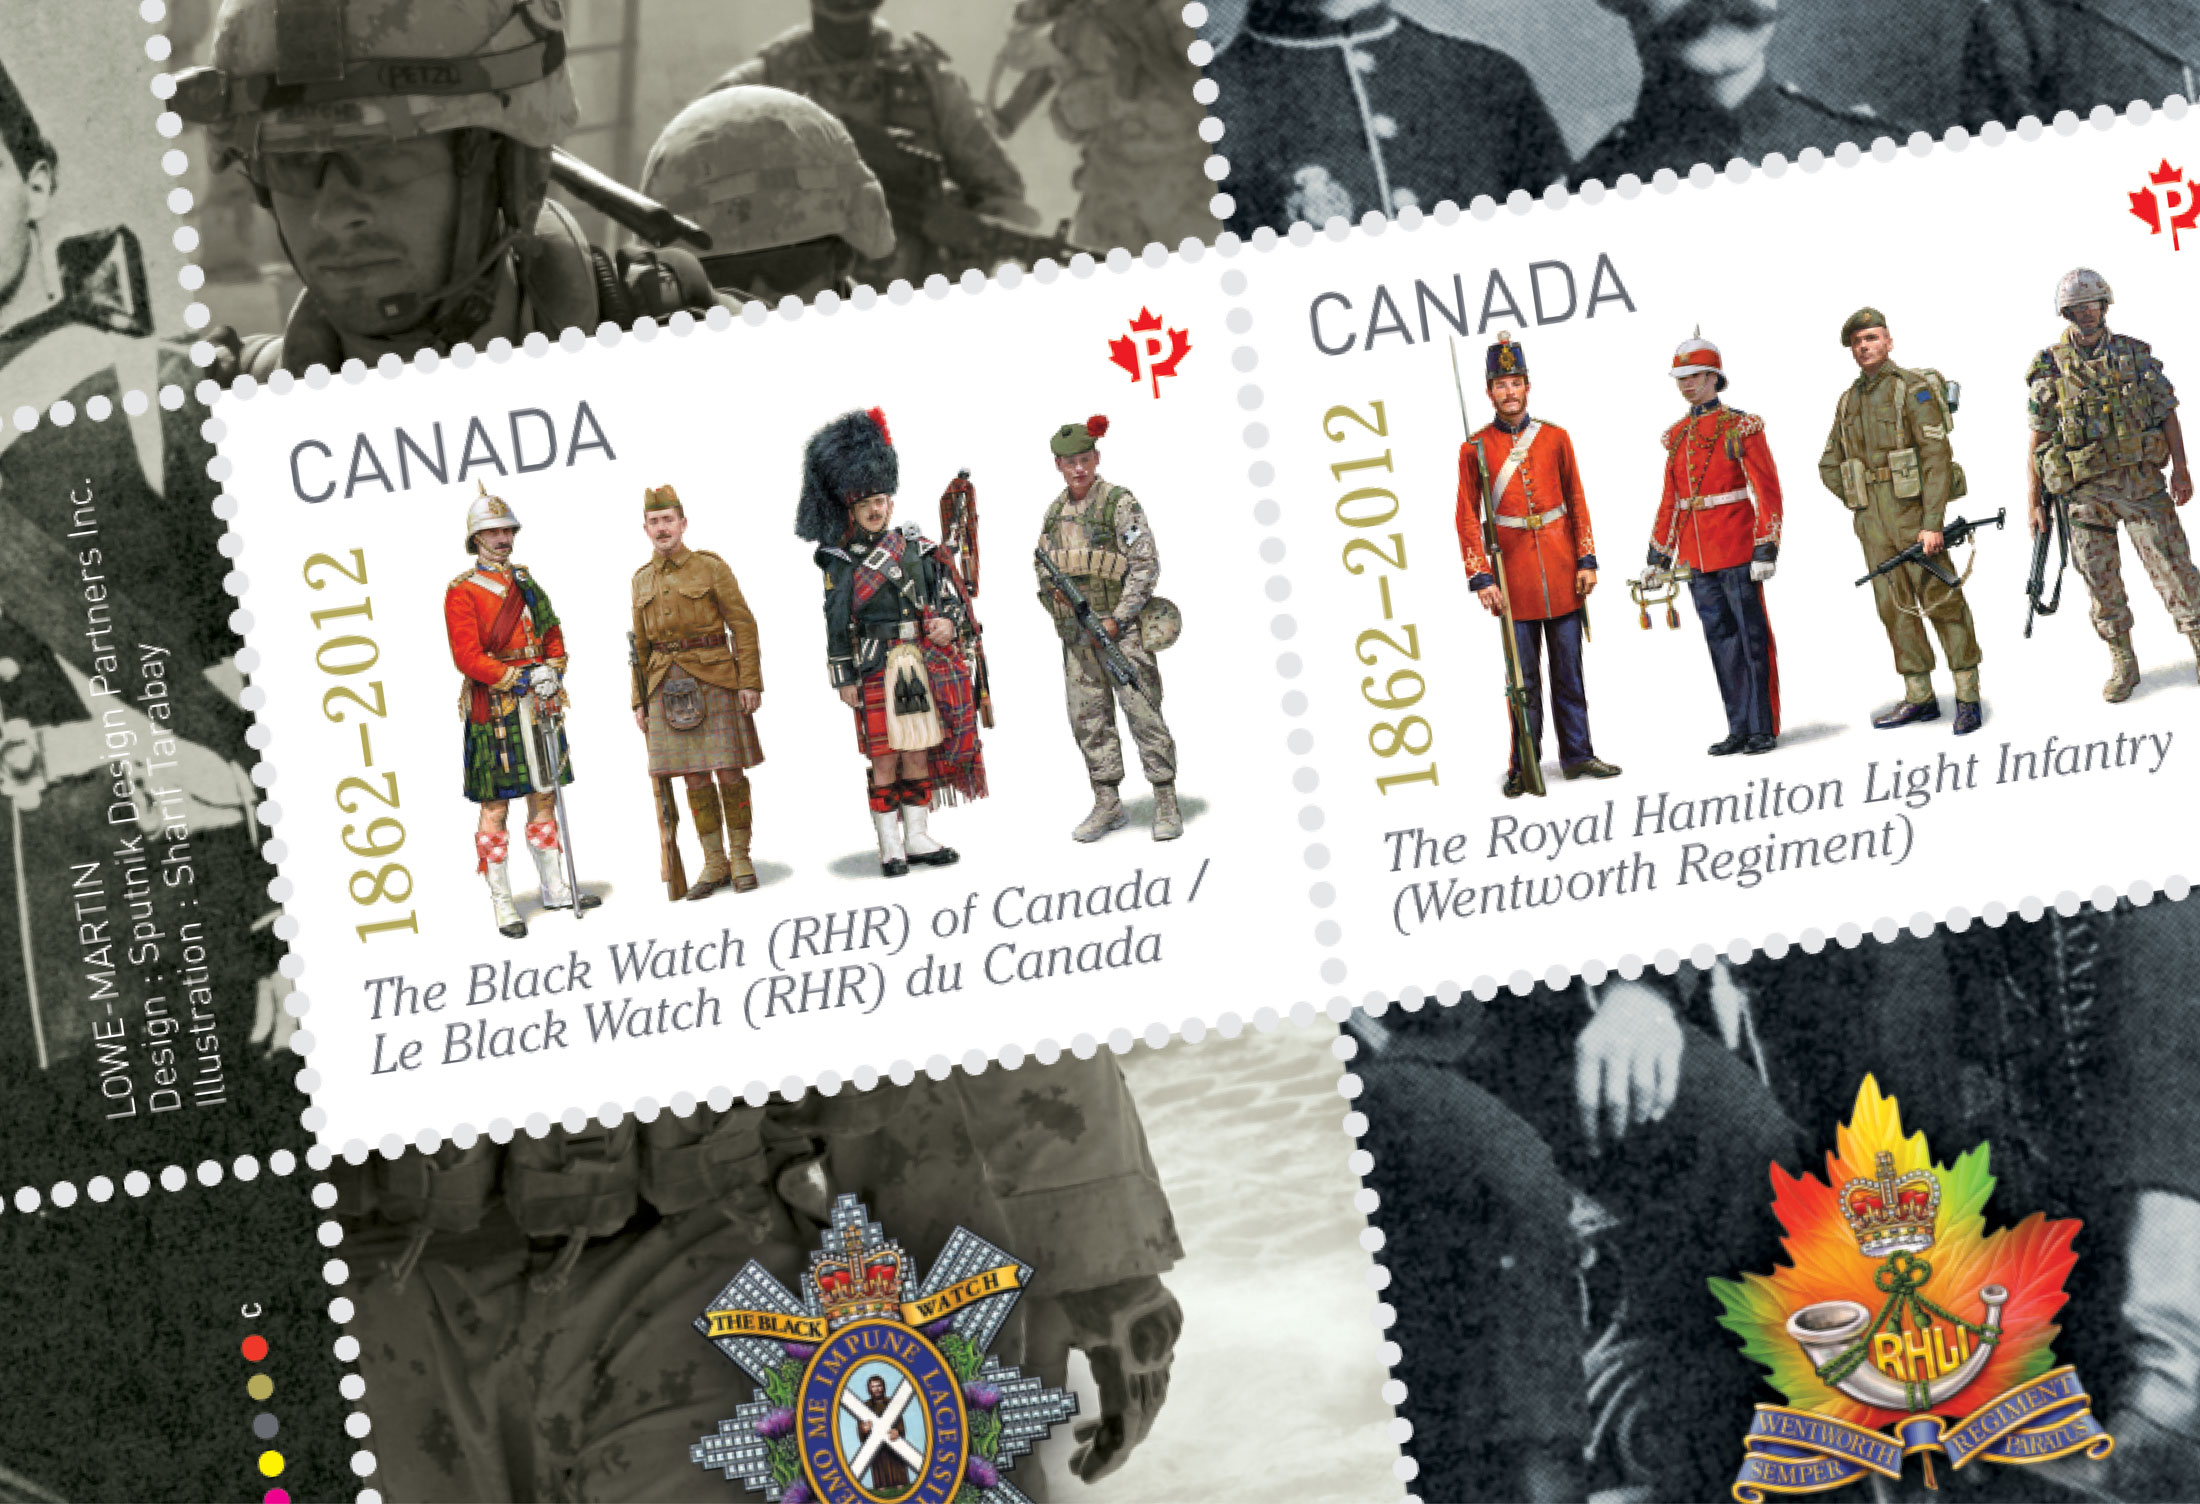 canada-post-150th-anniversary-military-in-canada-stamps-souvenir-sheet-sputnik-design-partners-toronto.jpg